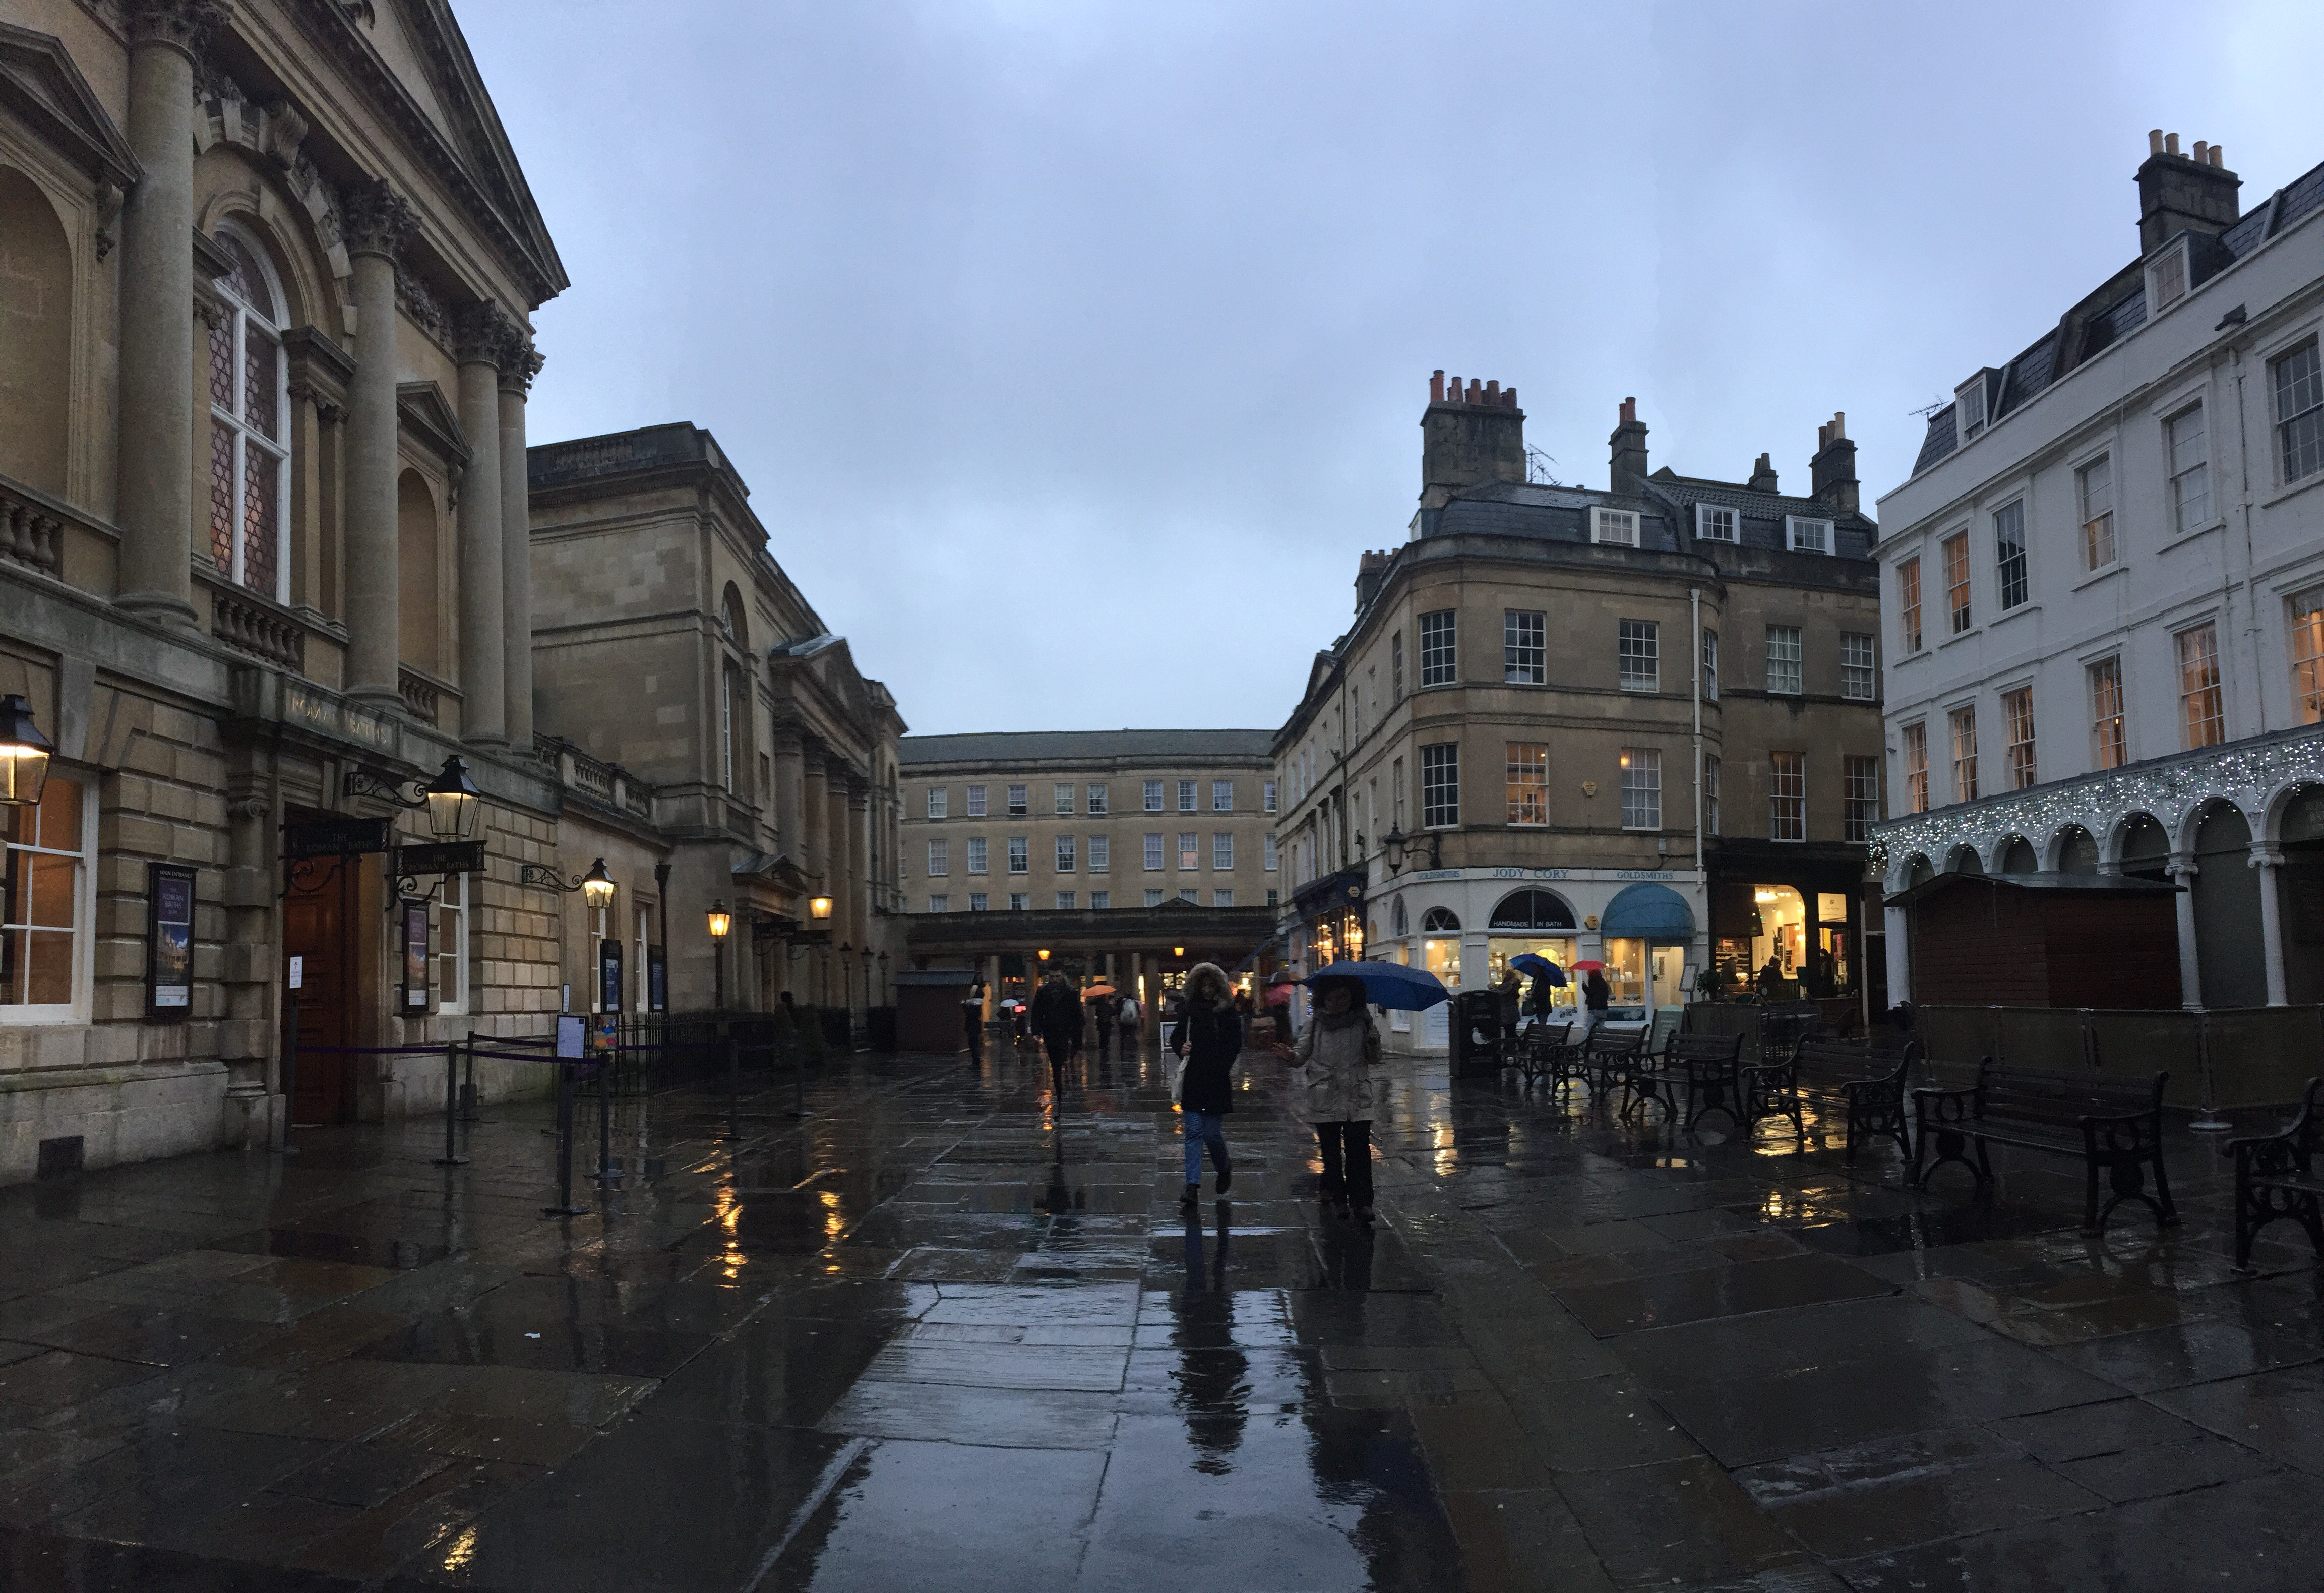 The Bath town square, looking romantic in the evening after a light shower.